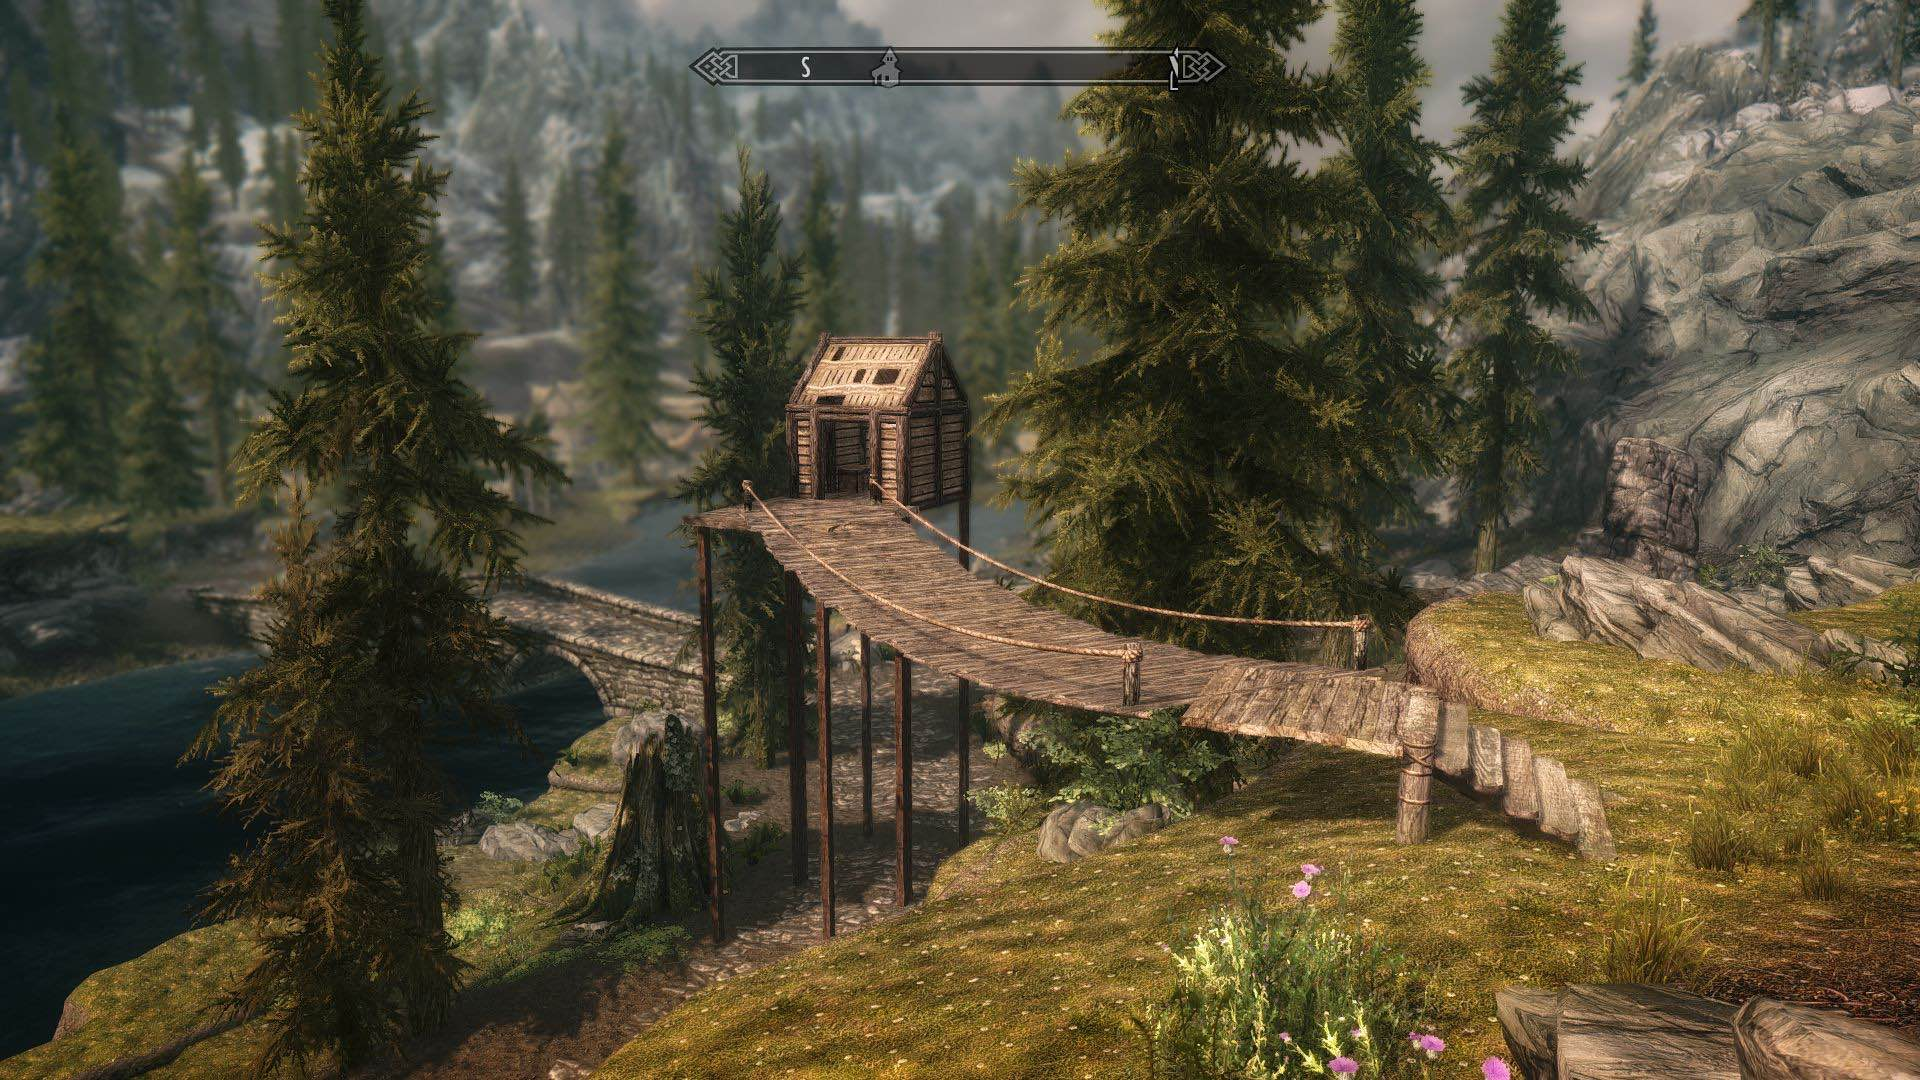 Live Anywhere Constructible Shacks Ɨ�本語化対応 Ů� Skyrim Mod